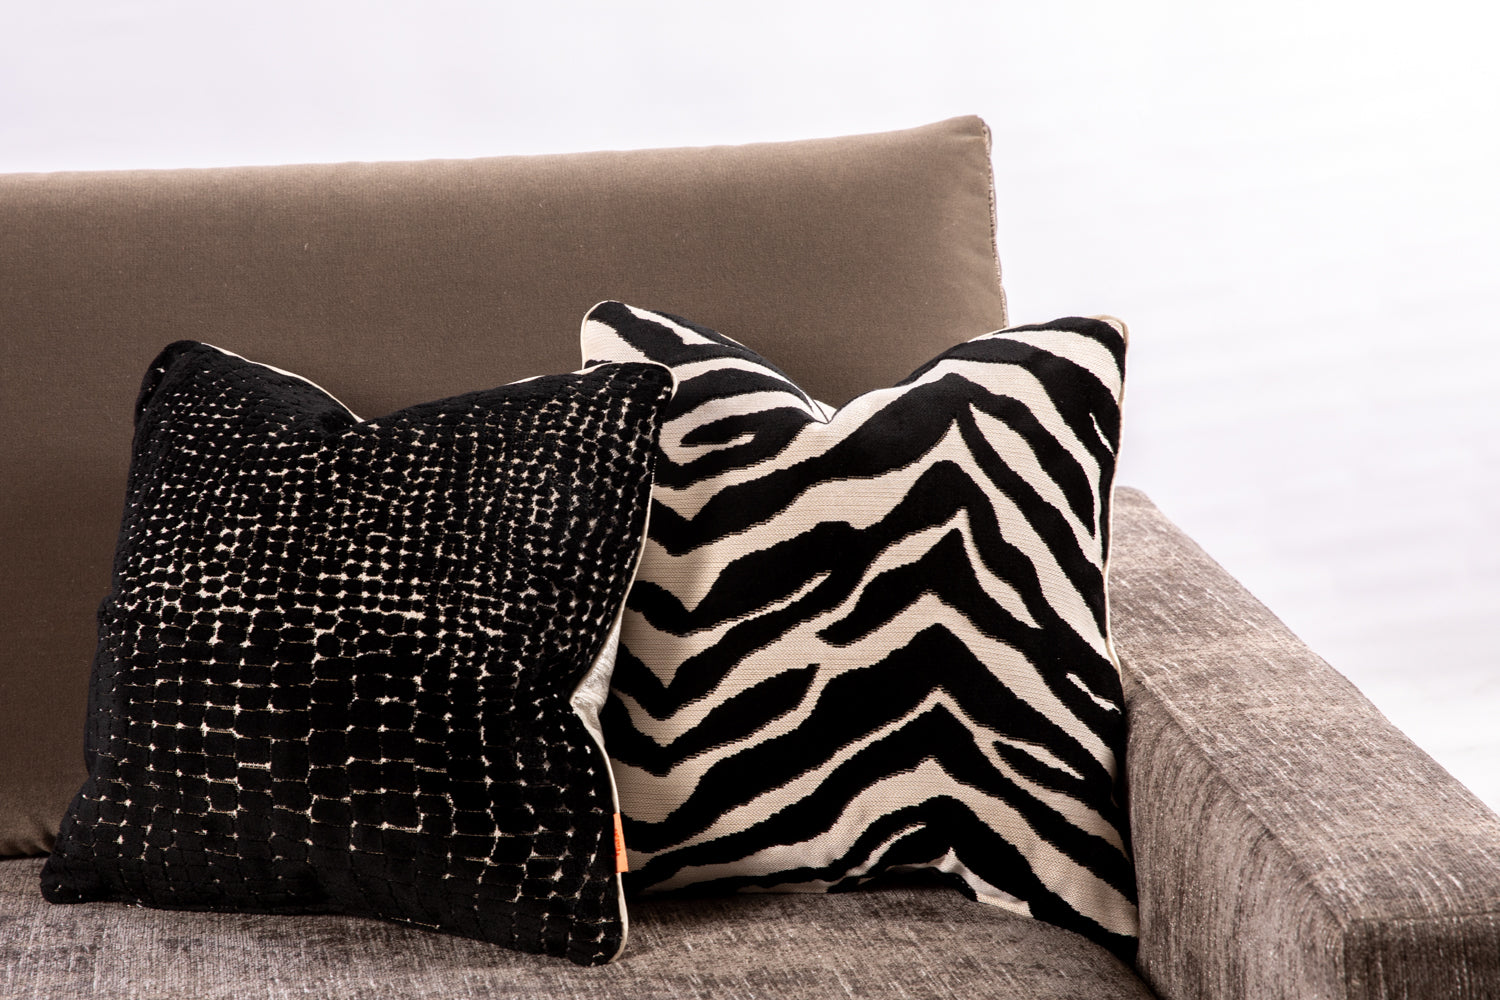 ffabb toss pillows, Maxwell animal print velvet fabric with piped trim